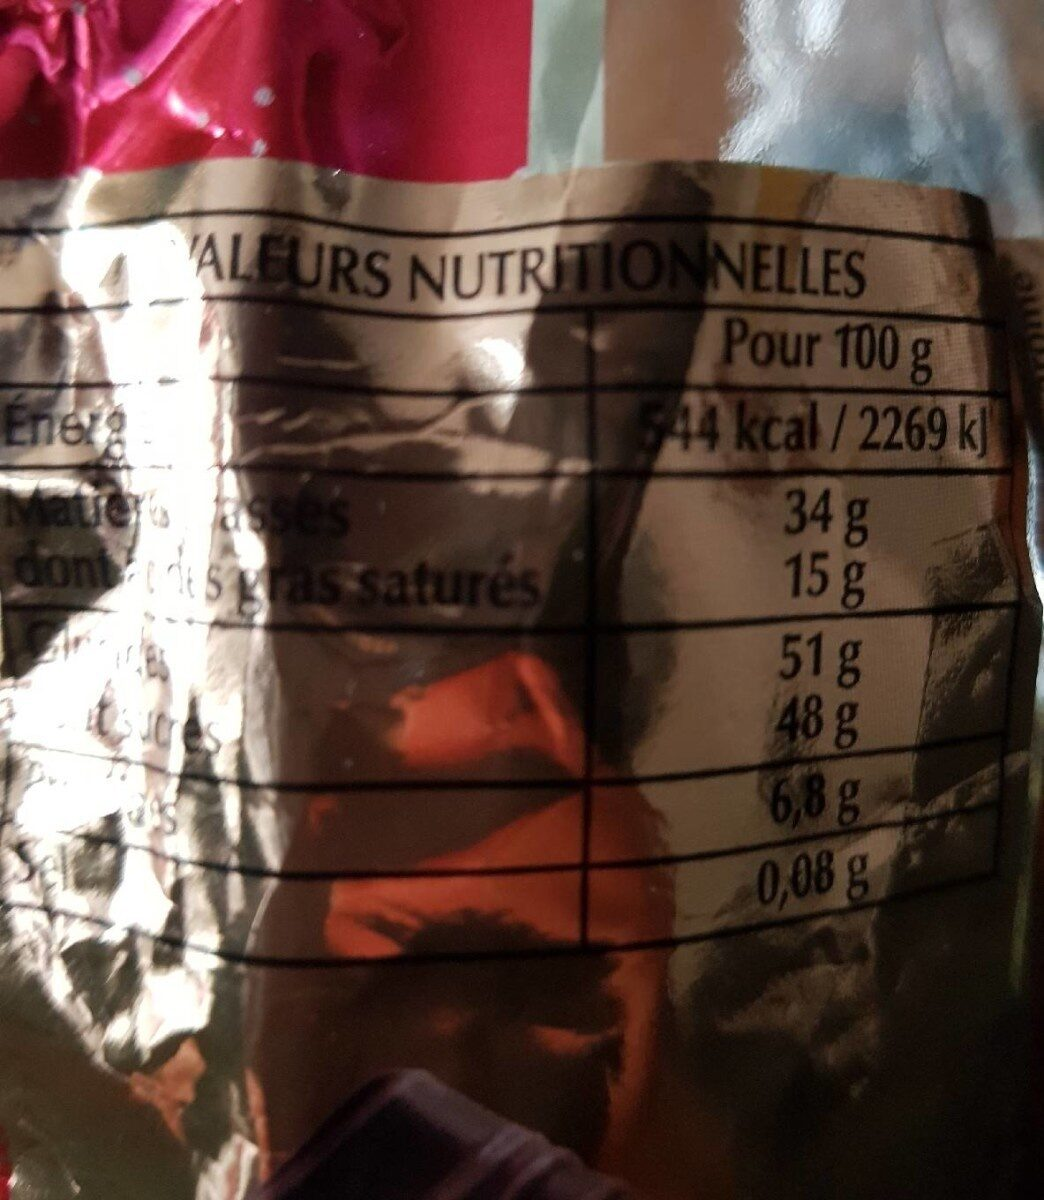 Papillotes revillon accord majeur - Informations nutritionnelles